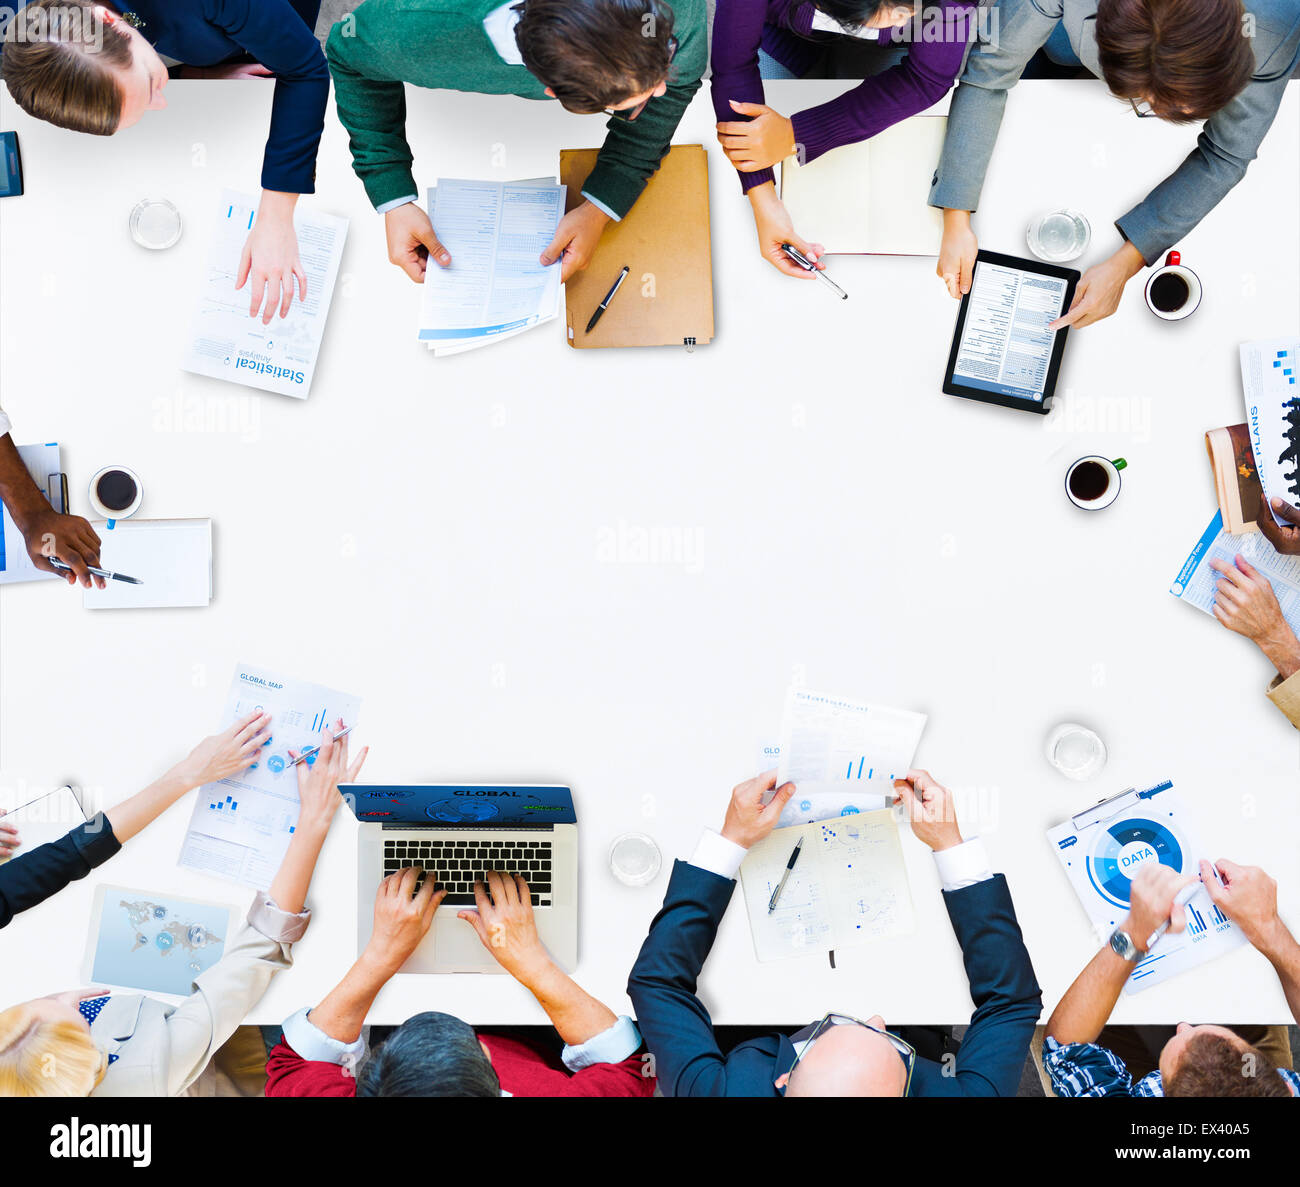 business people meeting corporate discussion concept - Stock Image